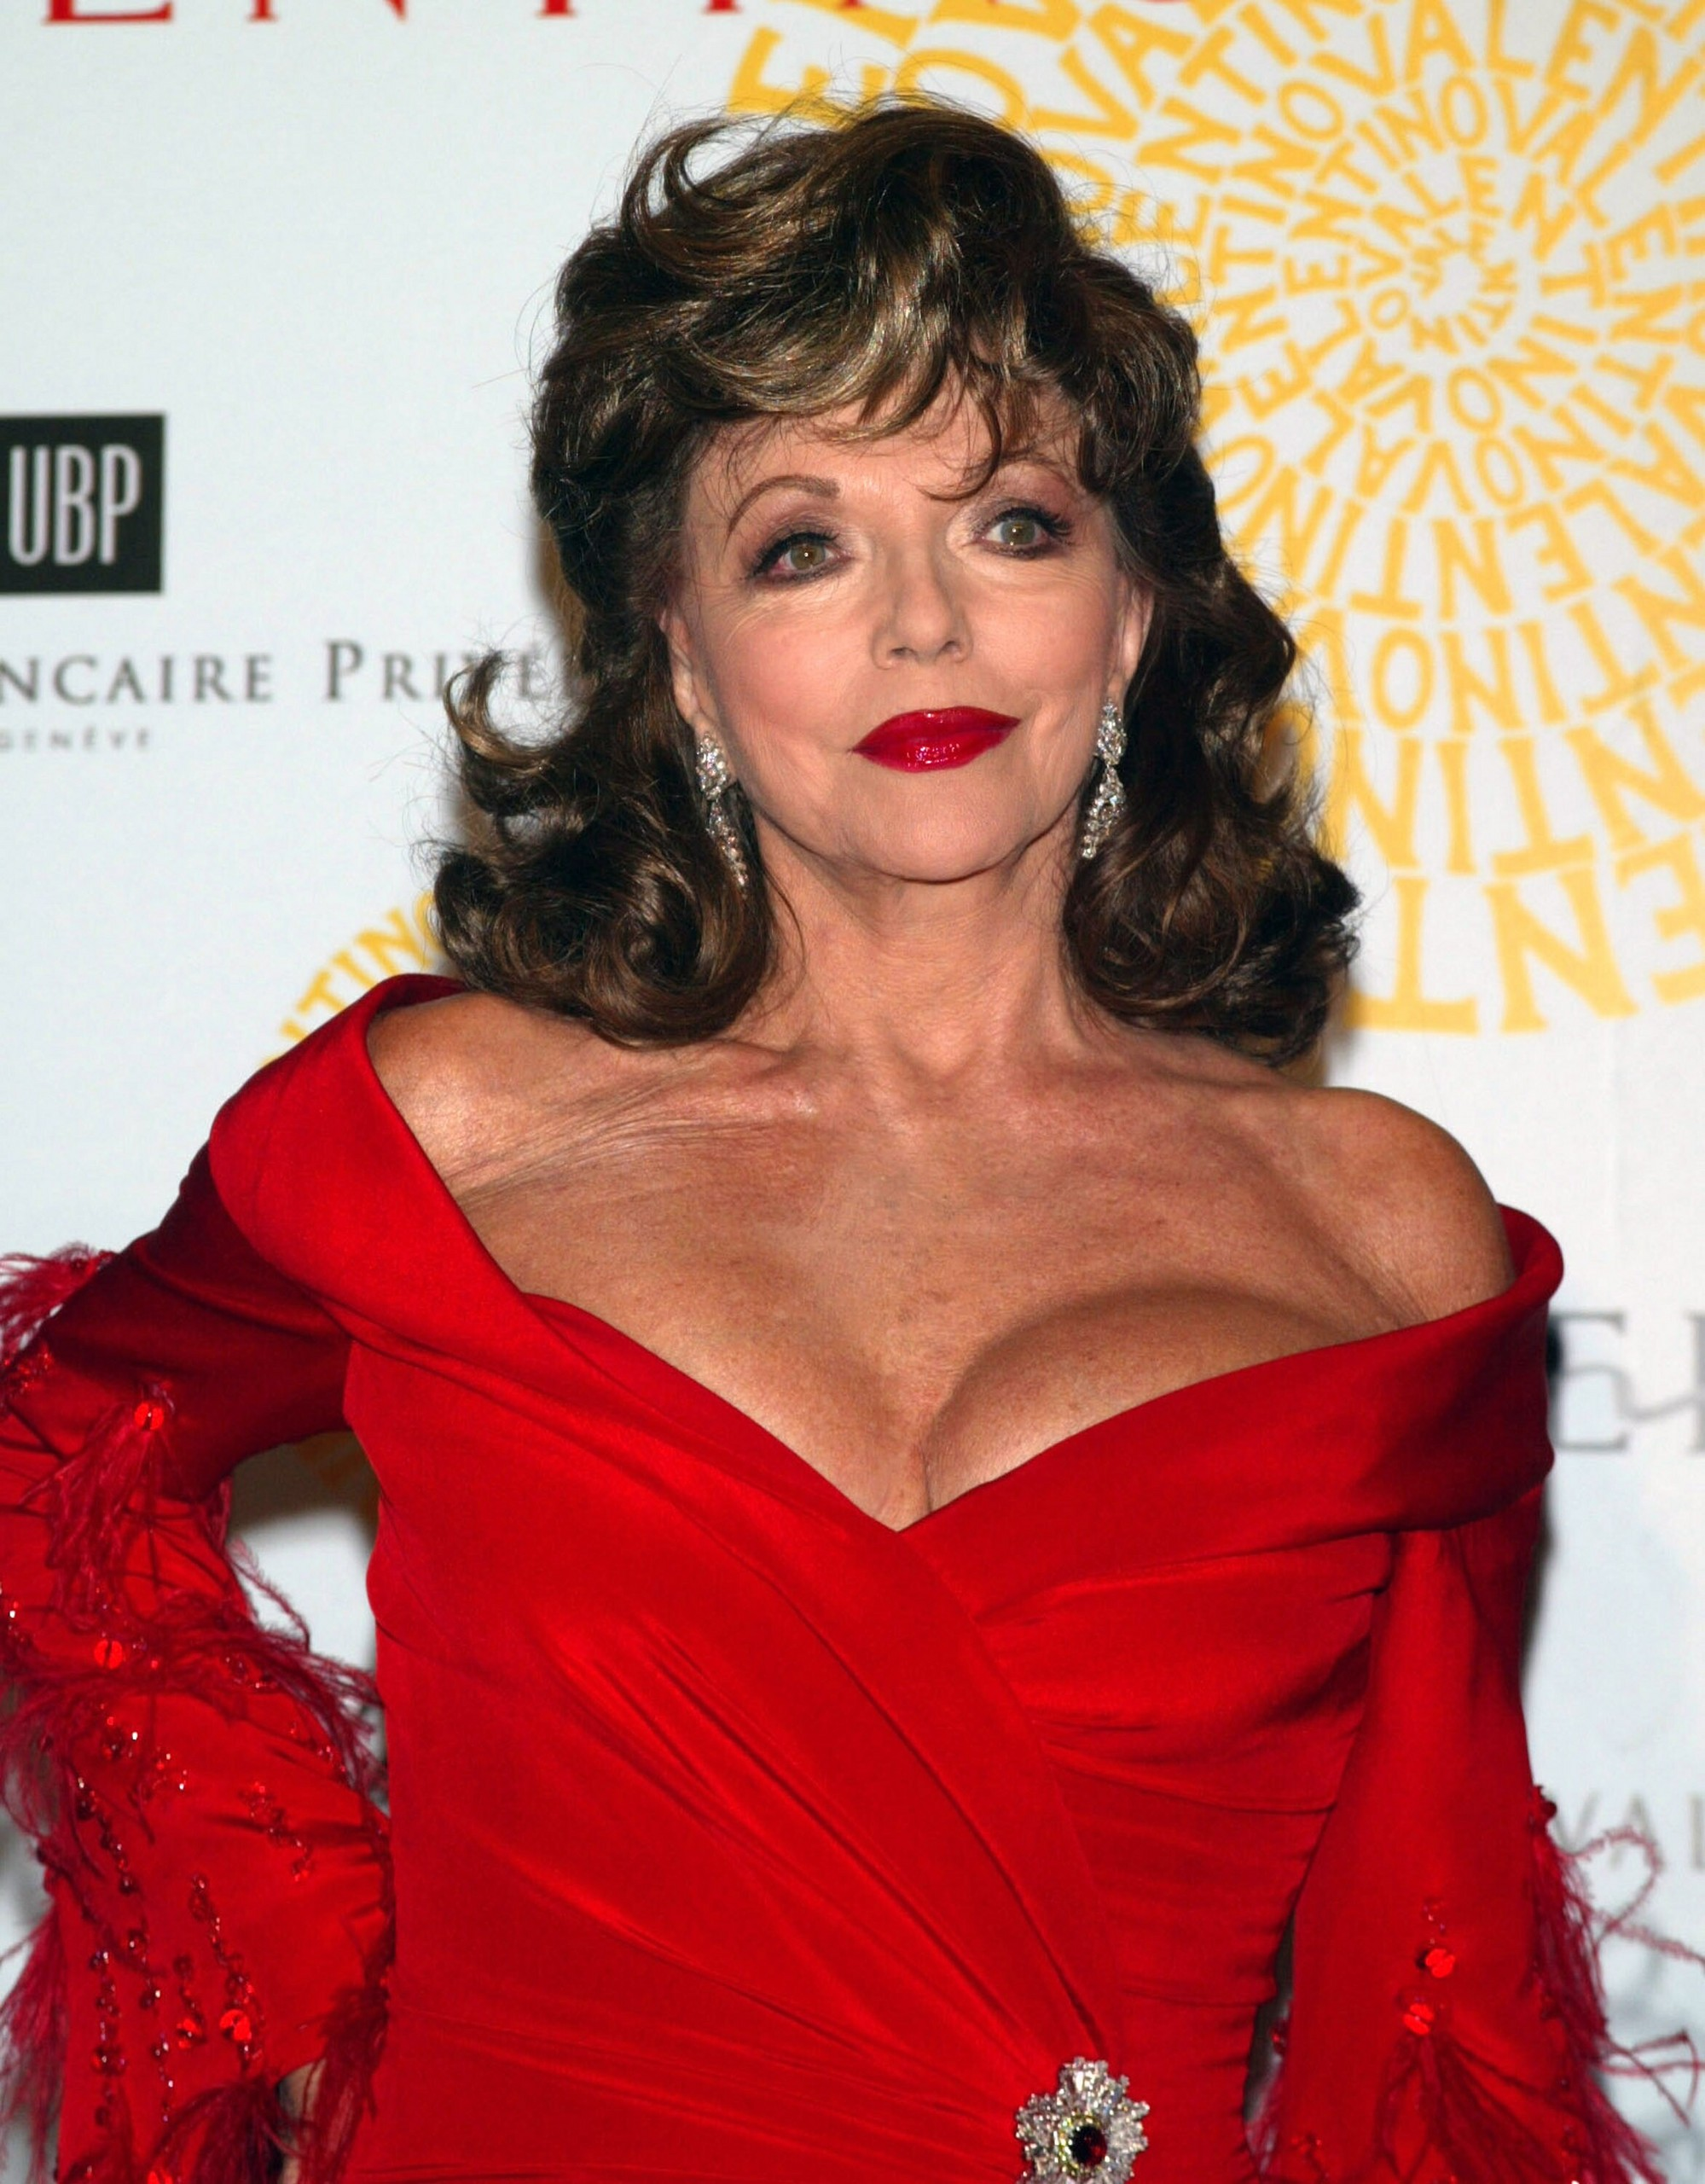 Joan Collins Joan Collins Joan Collins Photo 30675095 Fanpop